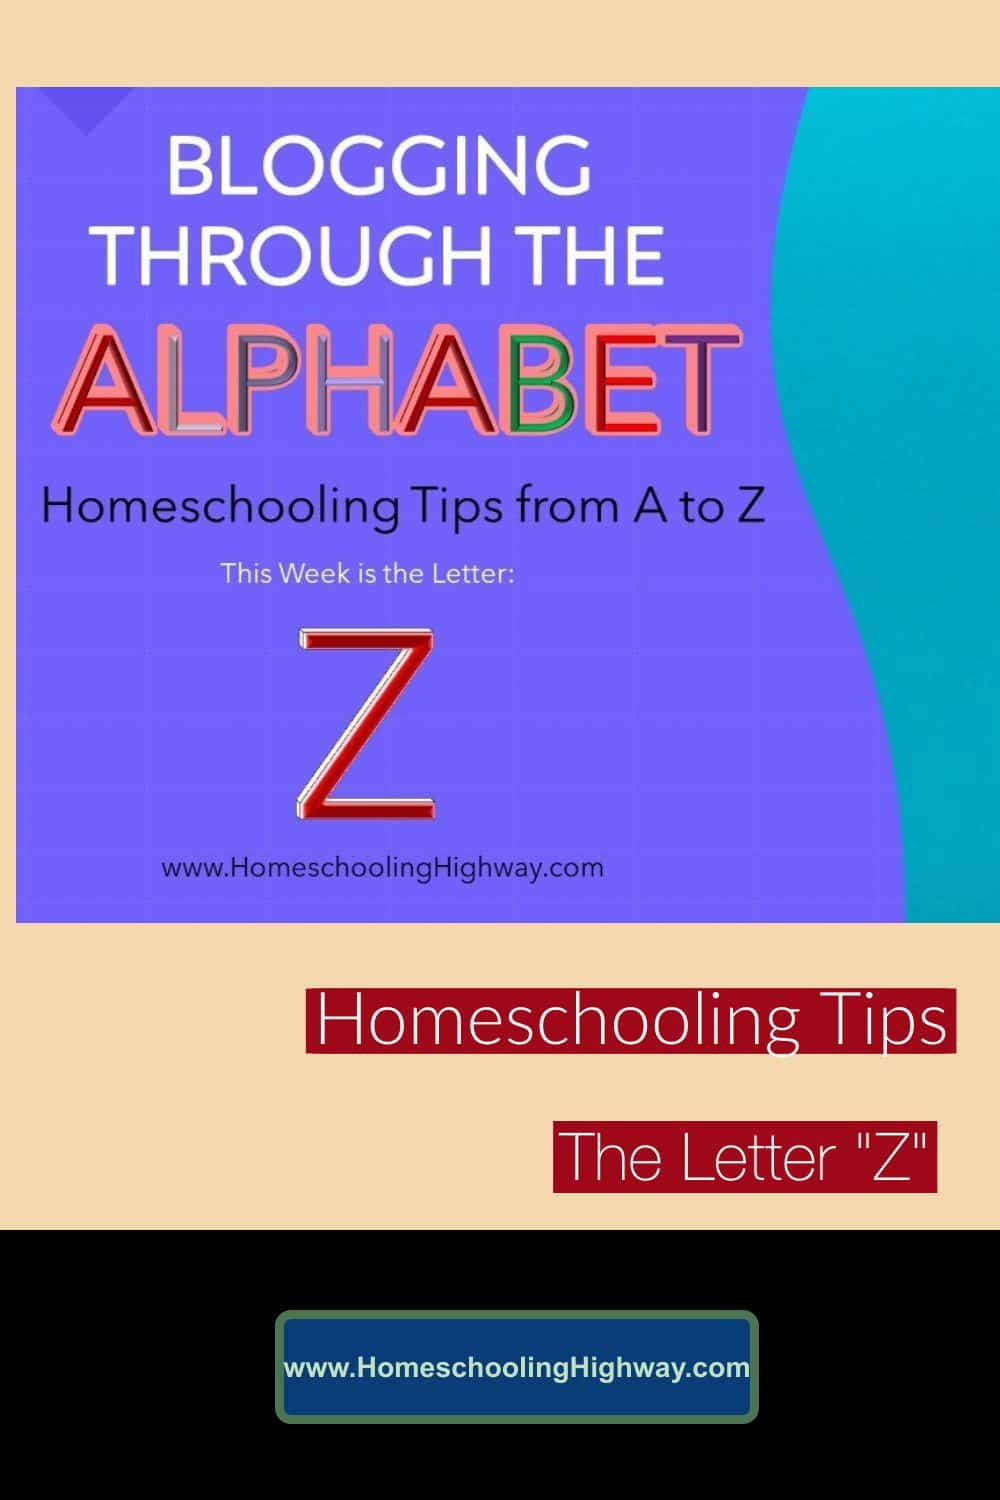 Homeschool tips that begin with the letter Z